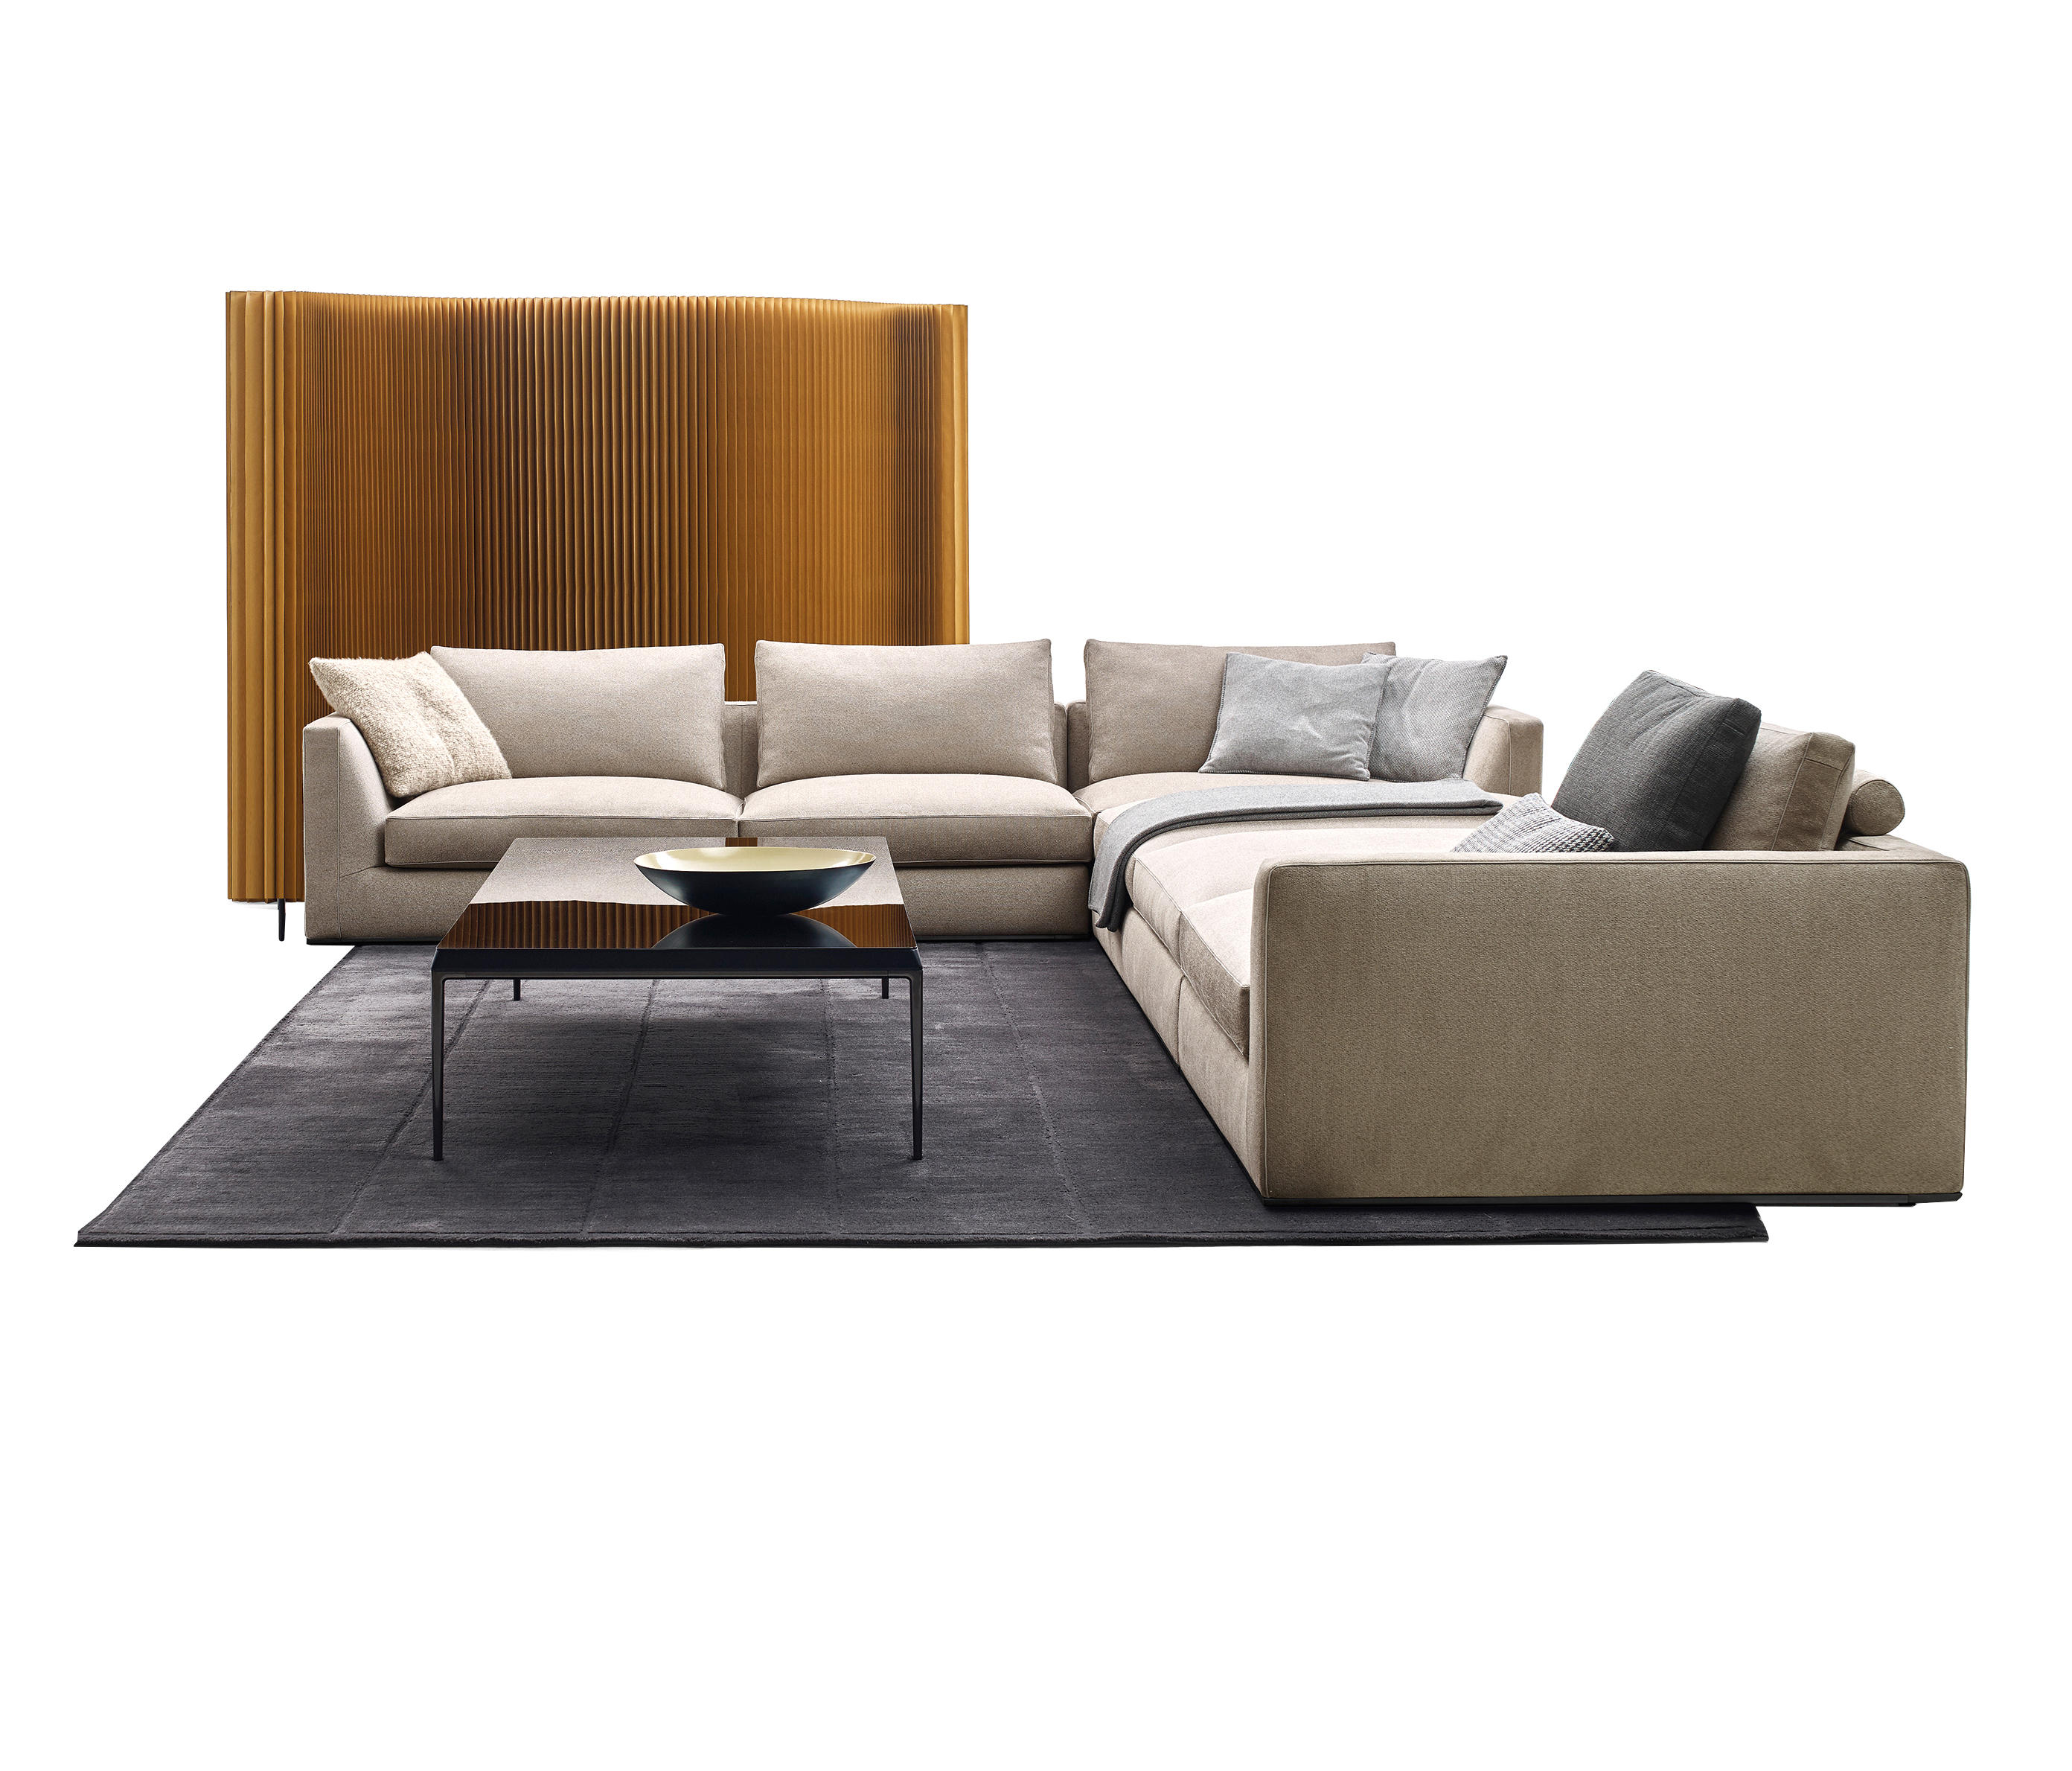 richard sofa modular seating systems from b b italia architonic. Black Bedroom Furniture Sets. Home Design Ideas